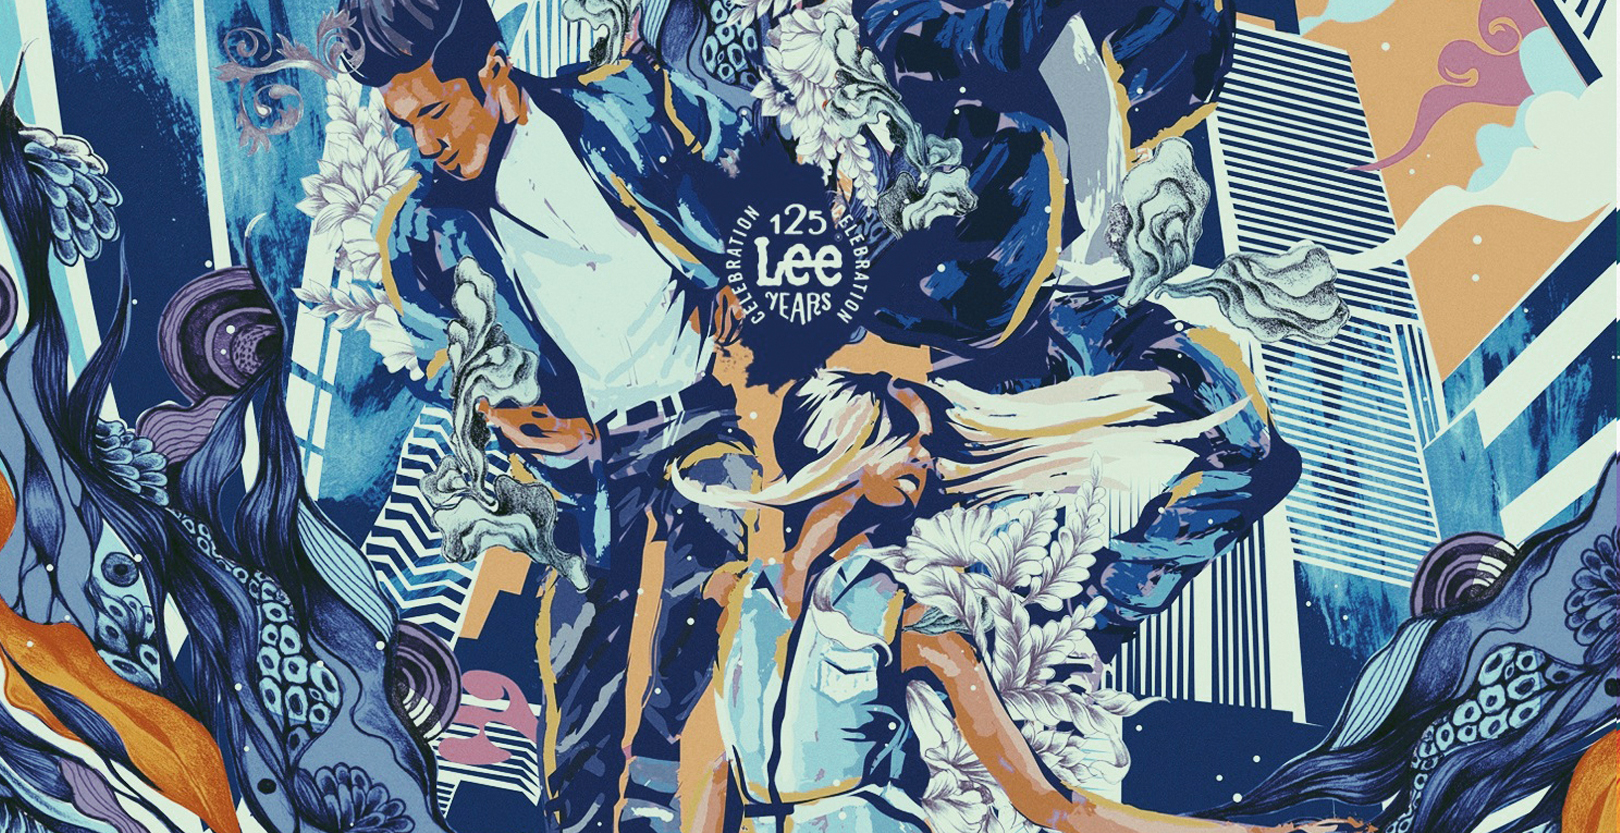 Lee Jeans Ph: 125 Years